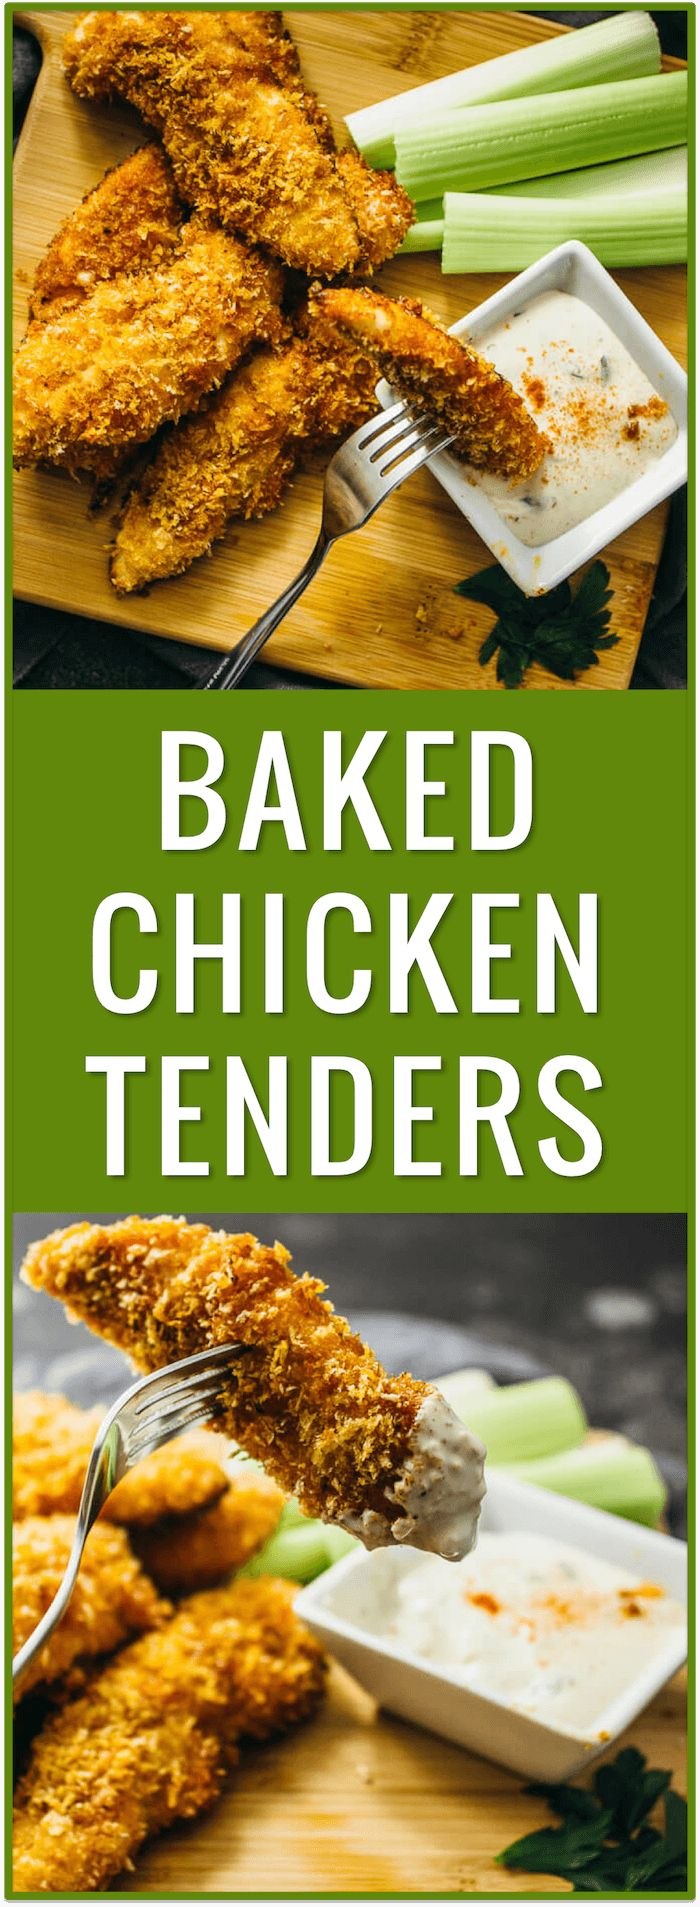 Baked chicken tenders with honey and cayenne - These crispy oven-baked chicken tenders are sweet and spicy, with only 5 ingredients in this recipe: chicken, panko bread crumbs, honey, butter, and cayenne powder. via @savory_tooth